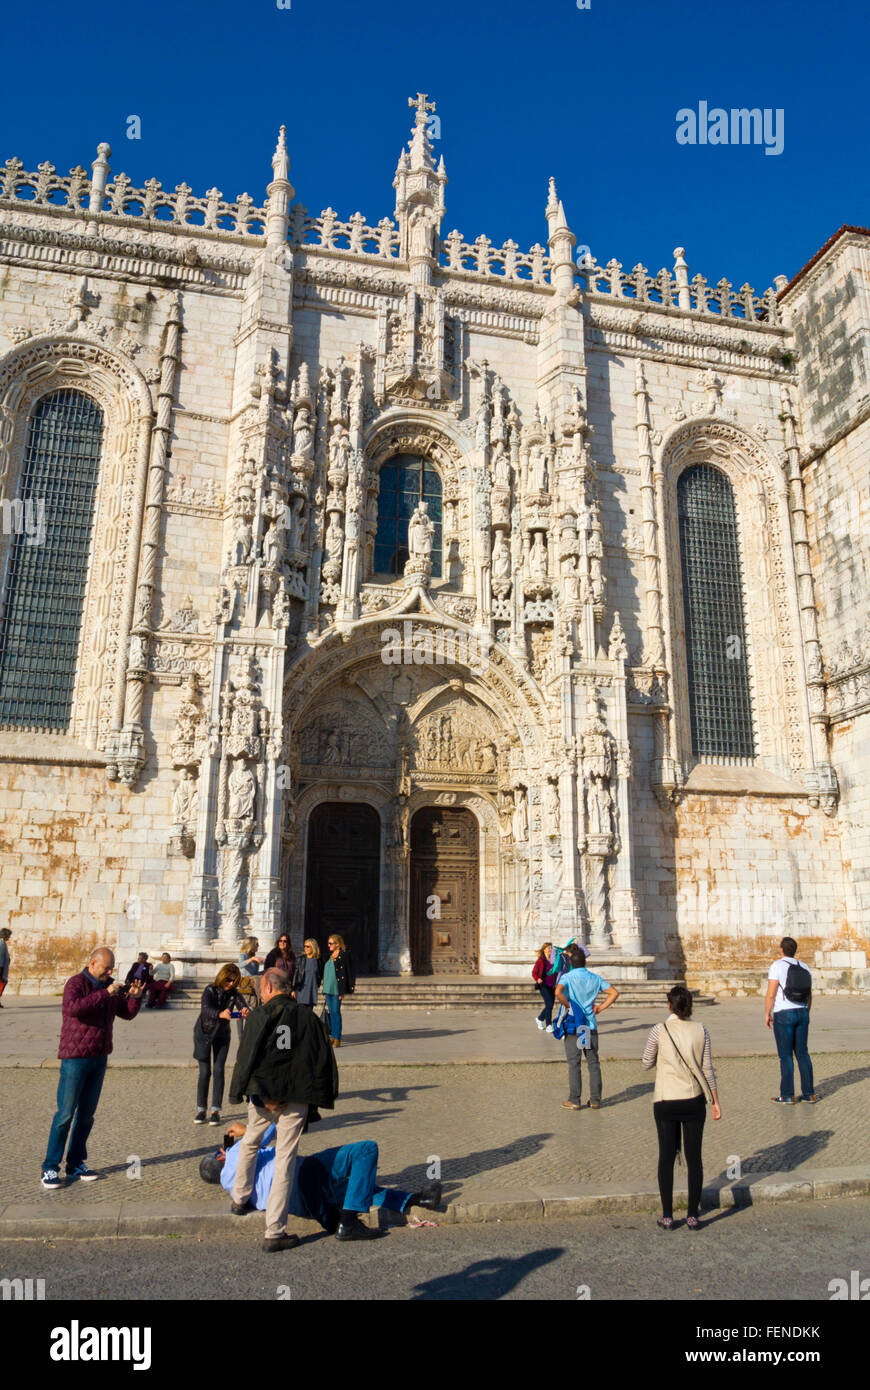 People taking photos, in front of Mosteiro dos Jerónimos, Jeronimos monastery, Belem, Lisbon, Portugal - Stock Image